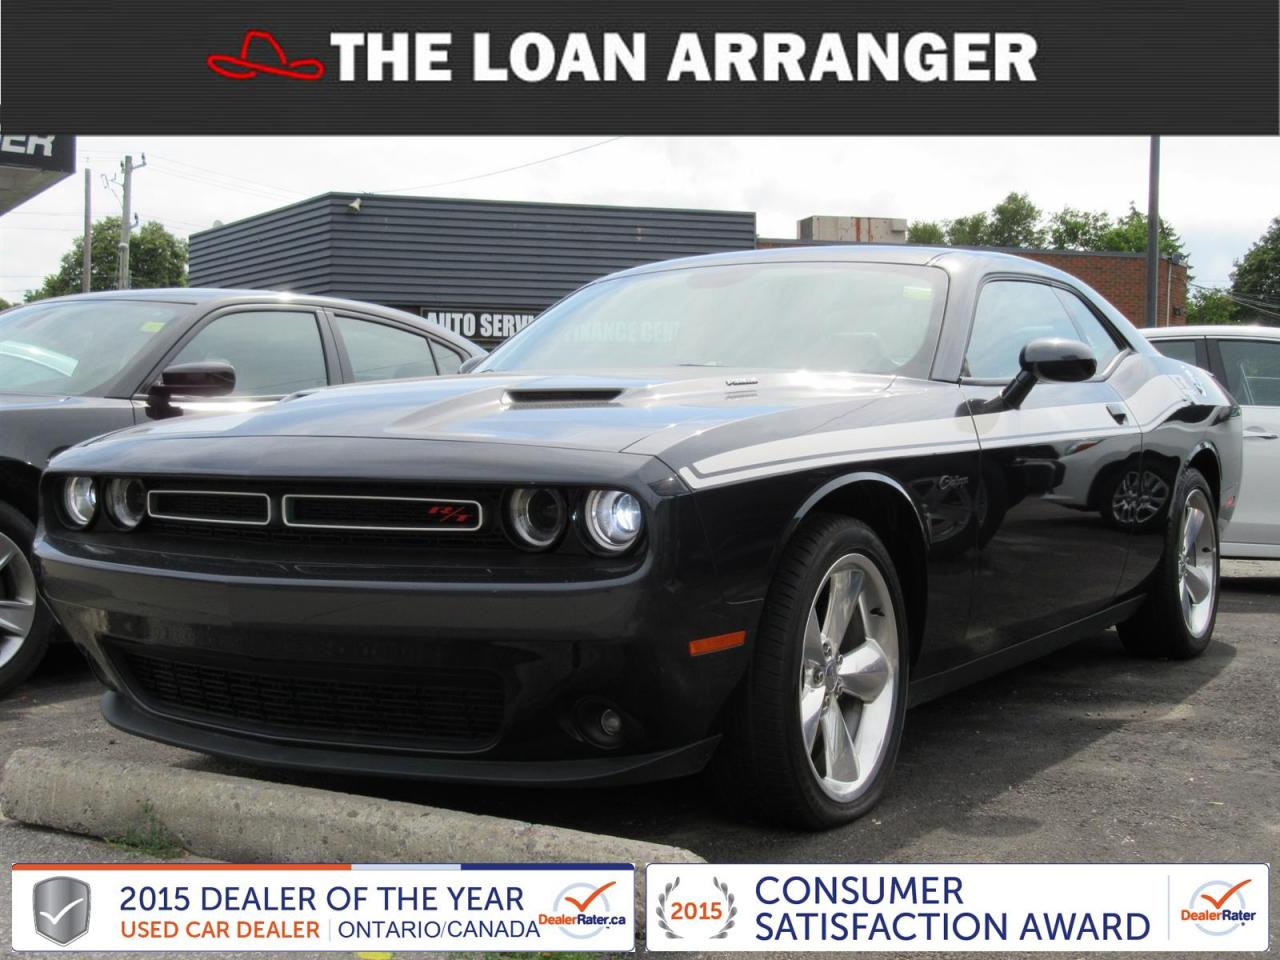 Used 2016 Dodge Challenger Hemi for Sale in Barrie, Ontario ...